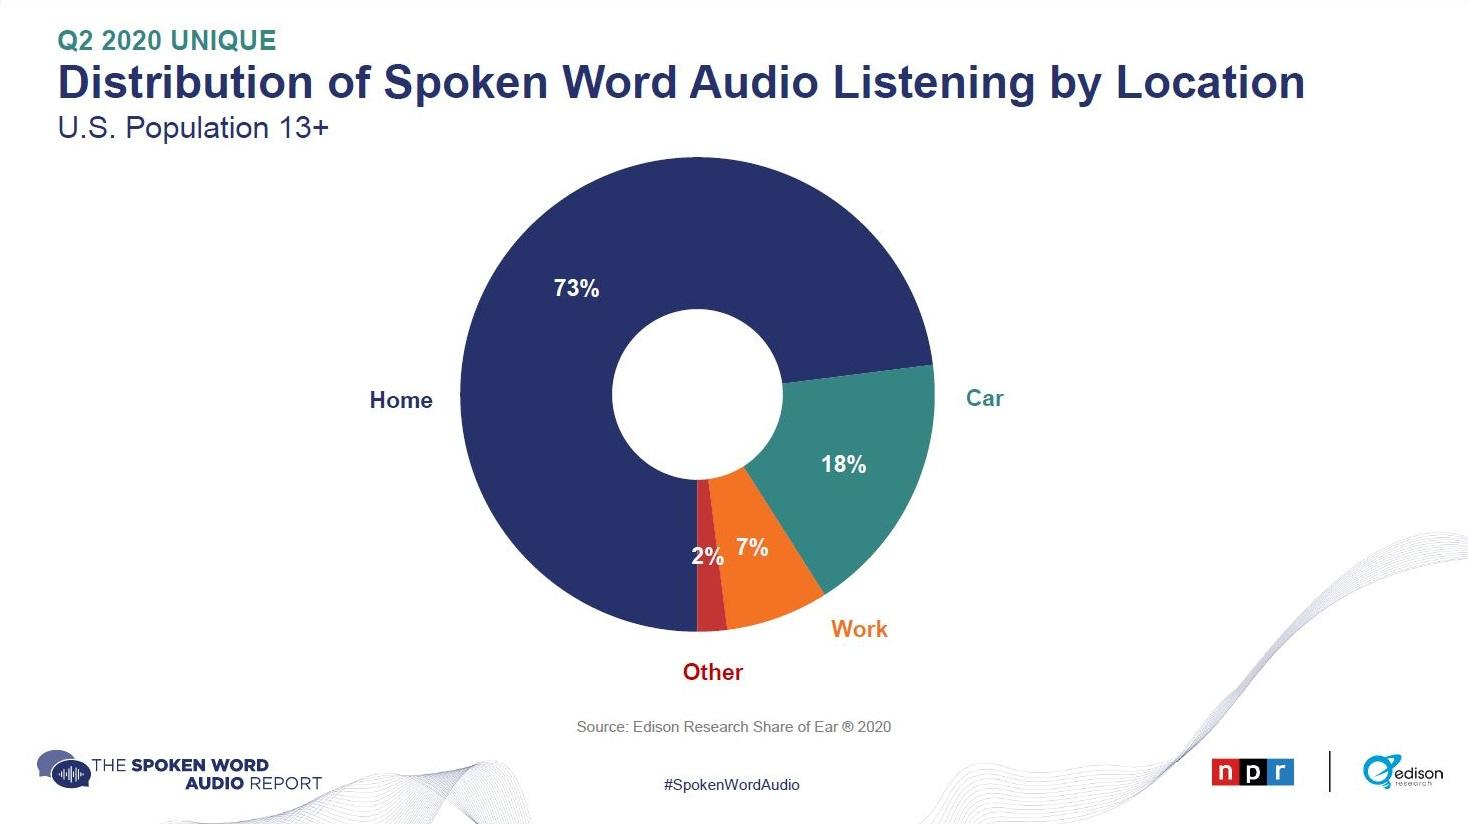 Distribution of Spoken Word Audio Listening by Location report